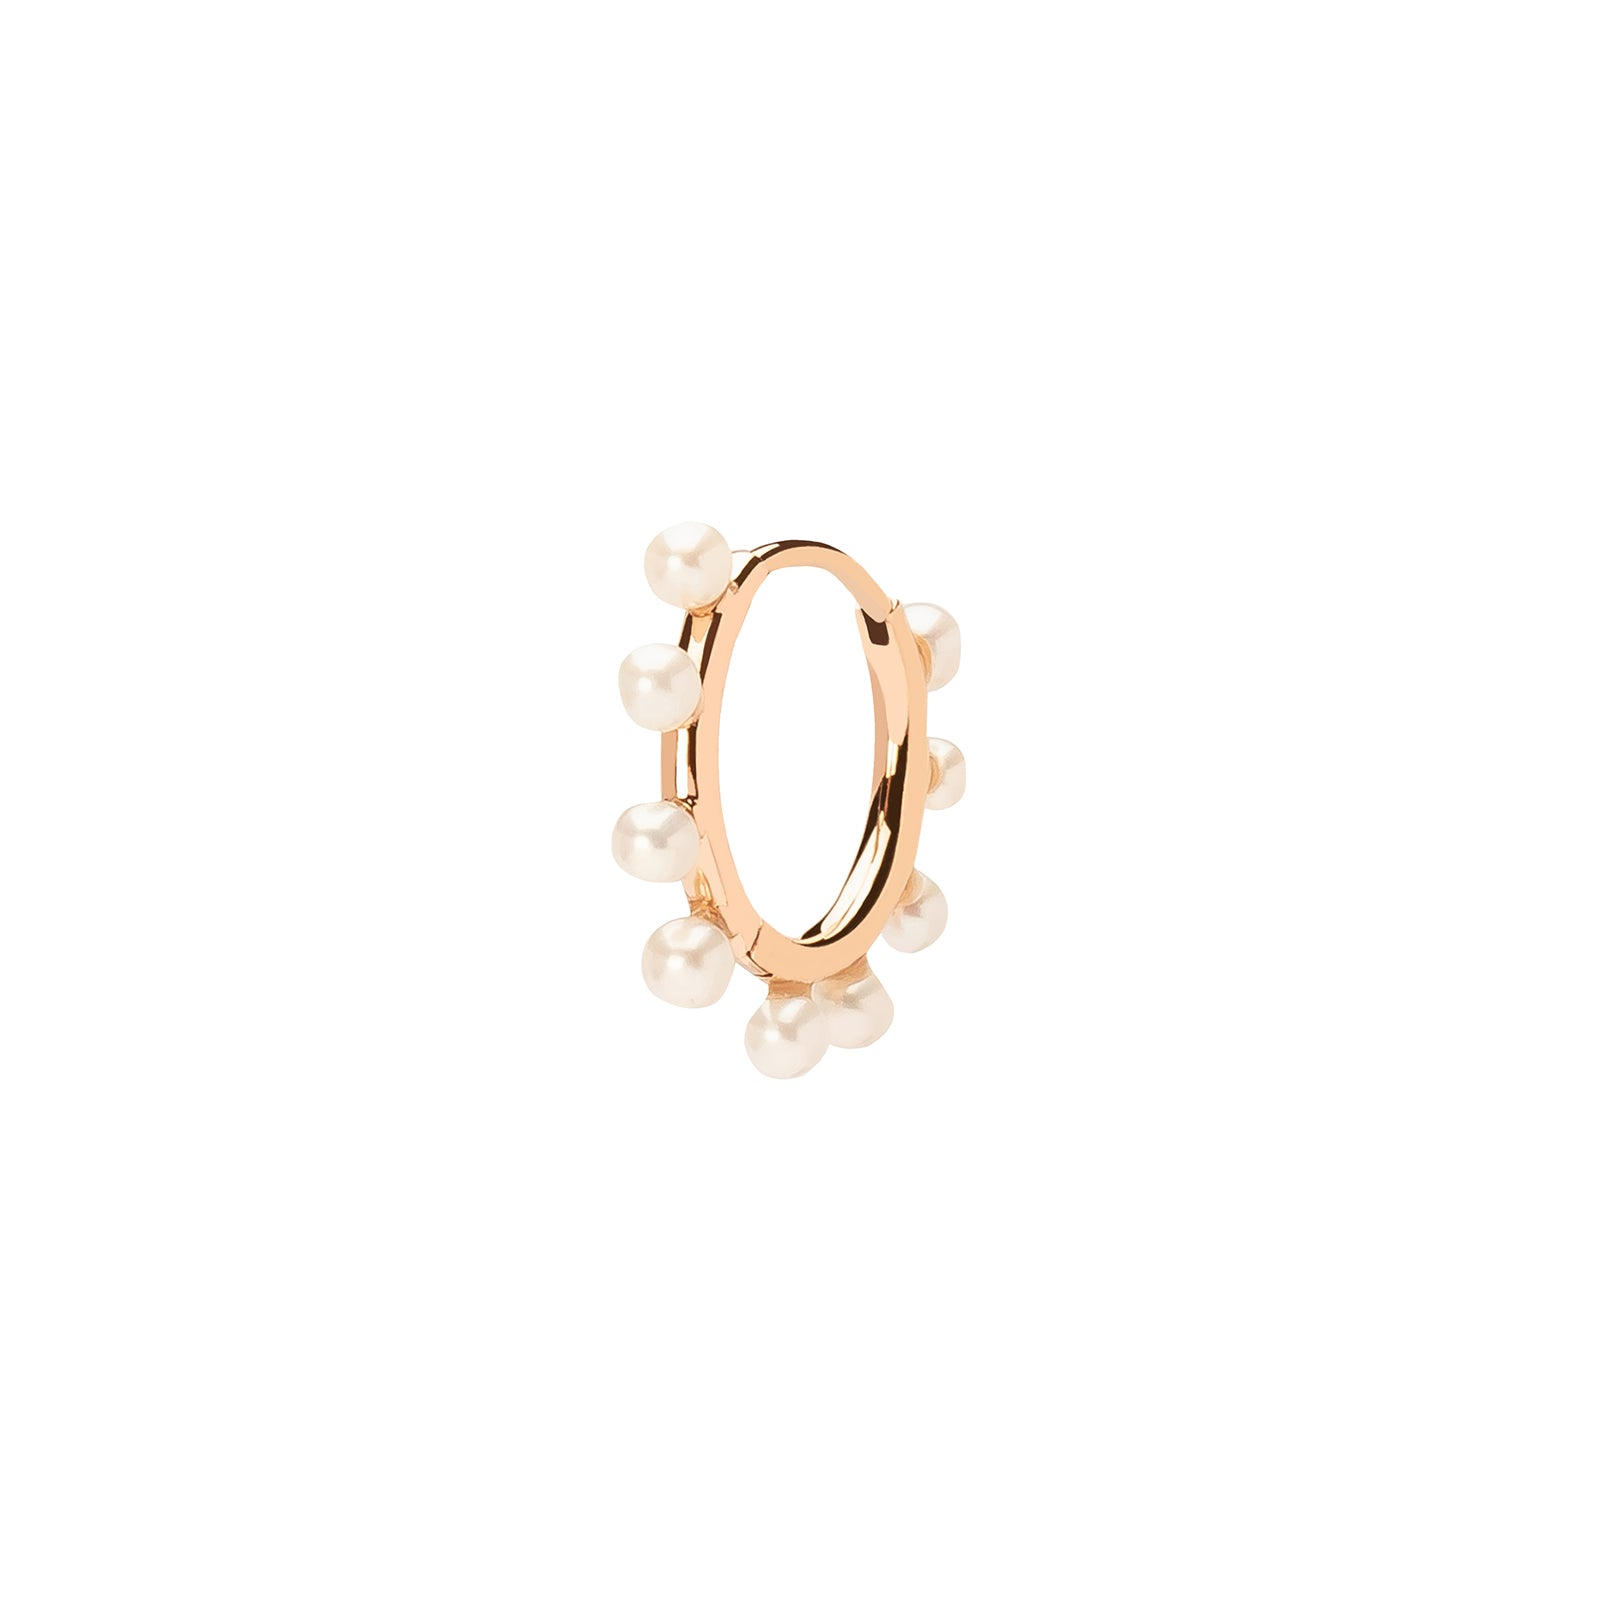 Persée Paris Multi Pearl Hoop Earring - Rose Gold - Earrings - Broken English Jewelry